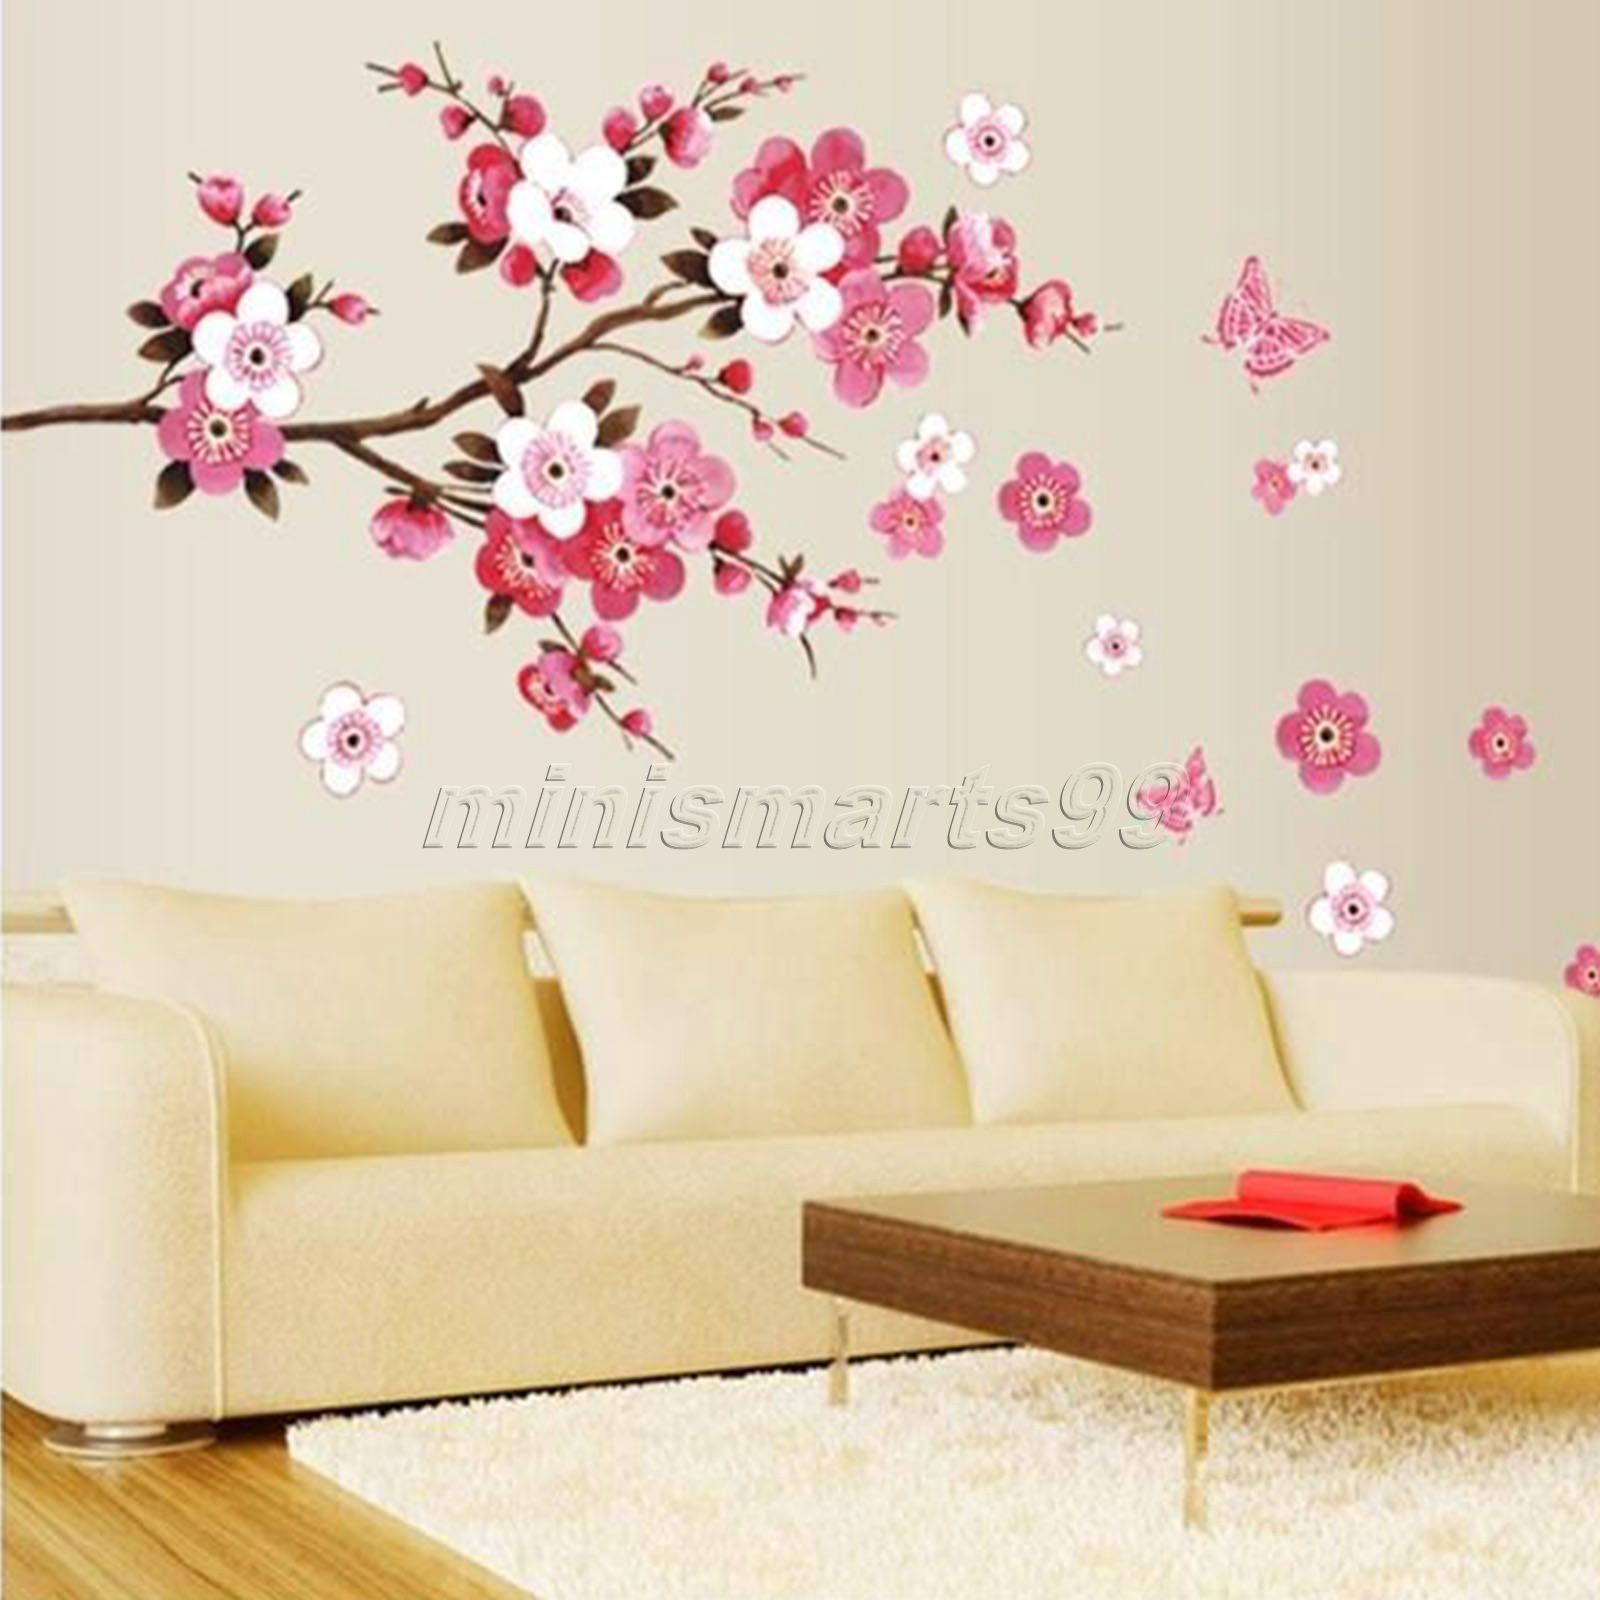 Us 3 68 31 Off Sakura Flower Erfly Cherry Blossom Wall Decal Nursery Tree Flowers Art Kids Room Sticker Nature Decor In